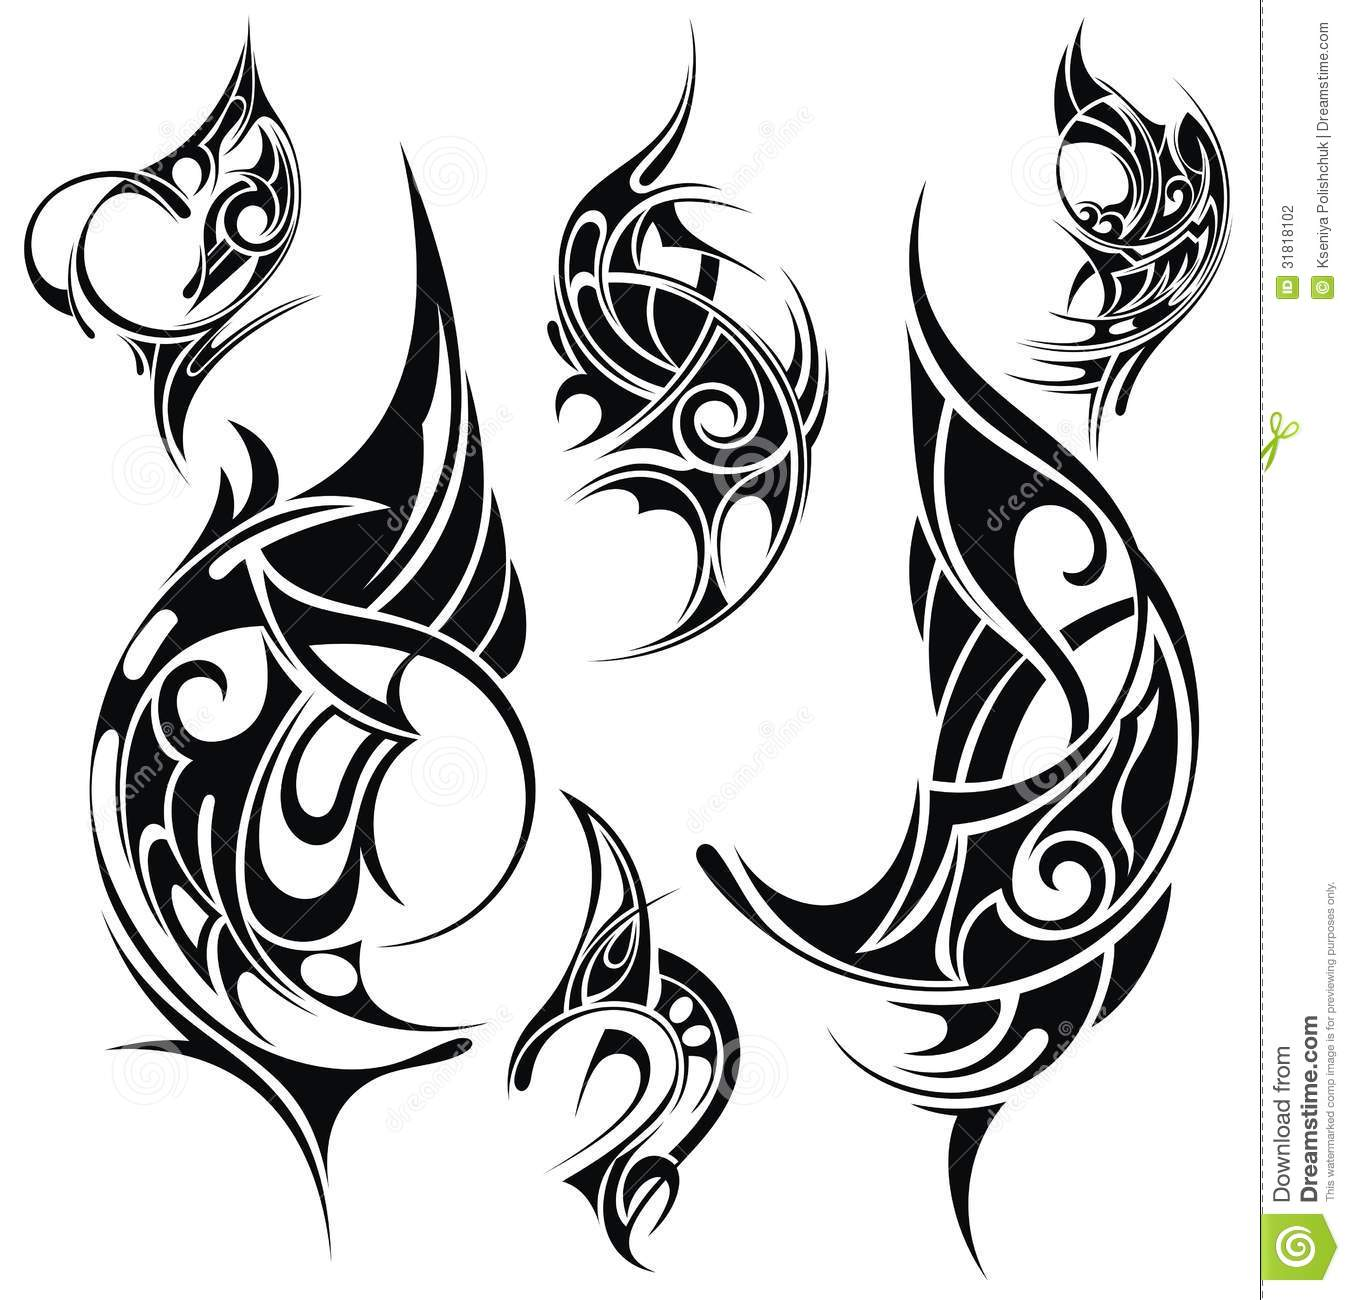 Tattoo Design Elements Stock Vector Illustration Of